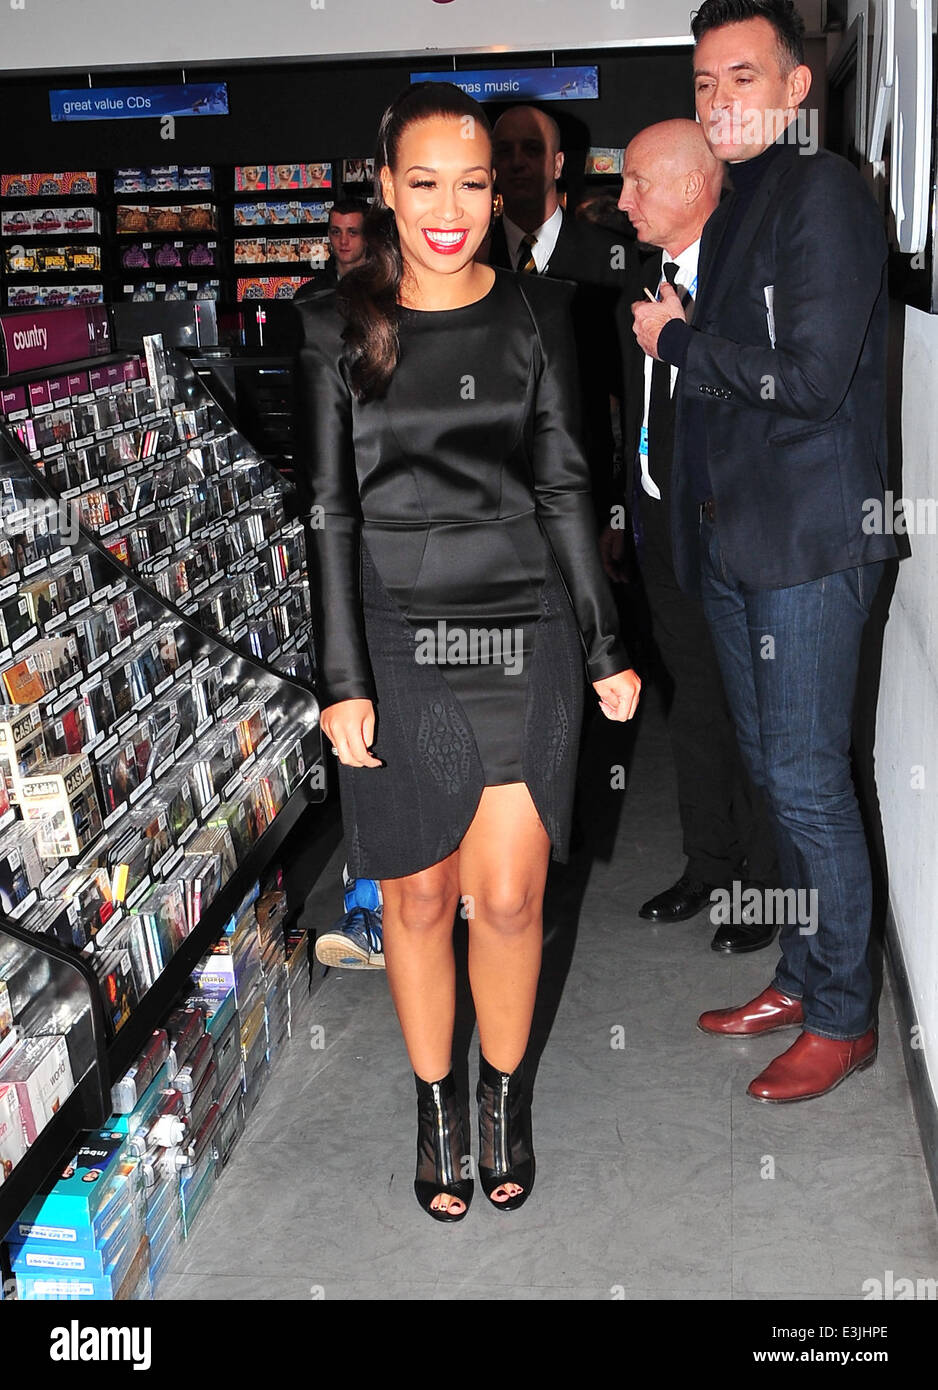 Rebecca Ferguson was at HMV Liverpool in her home city to